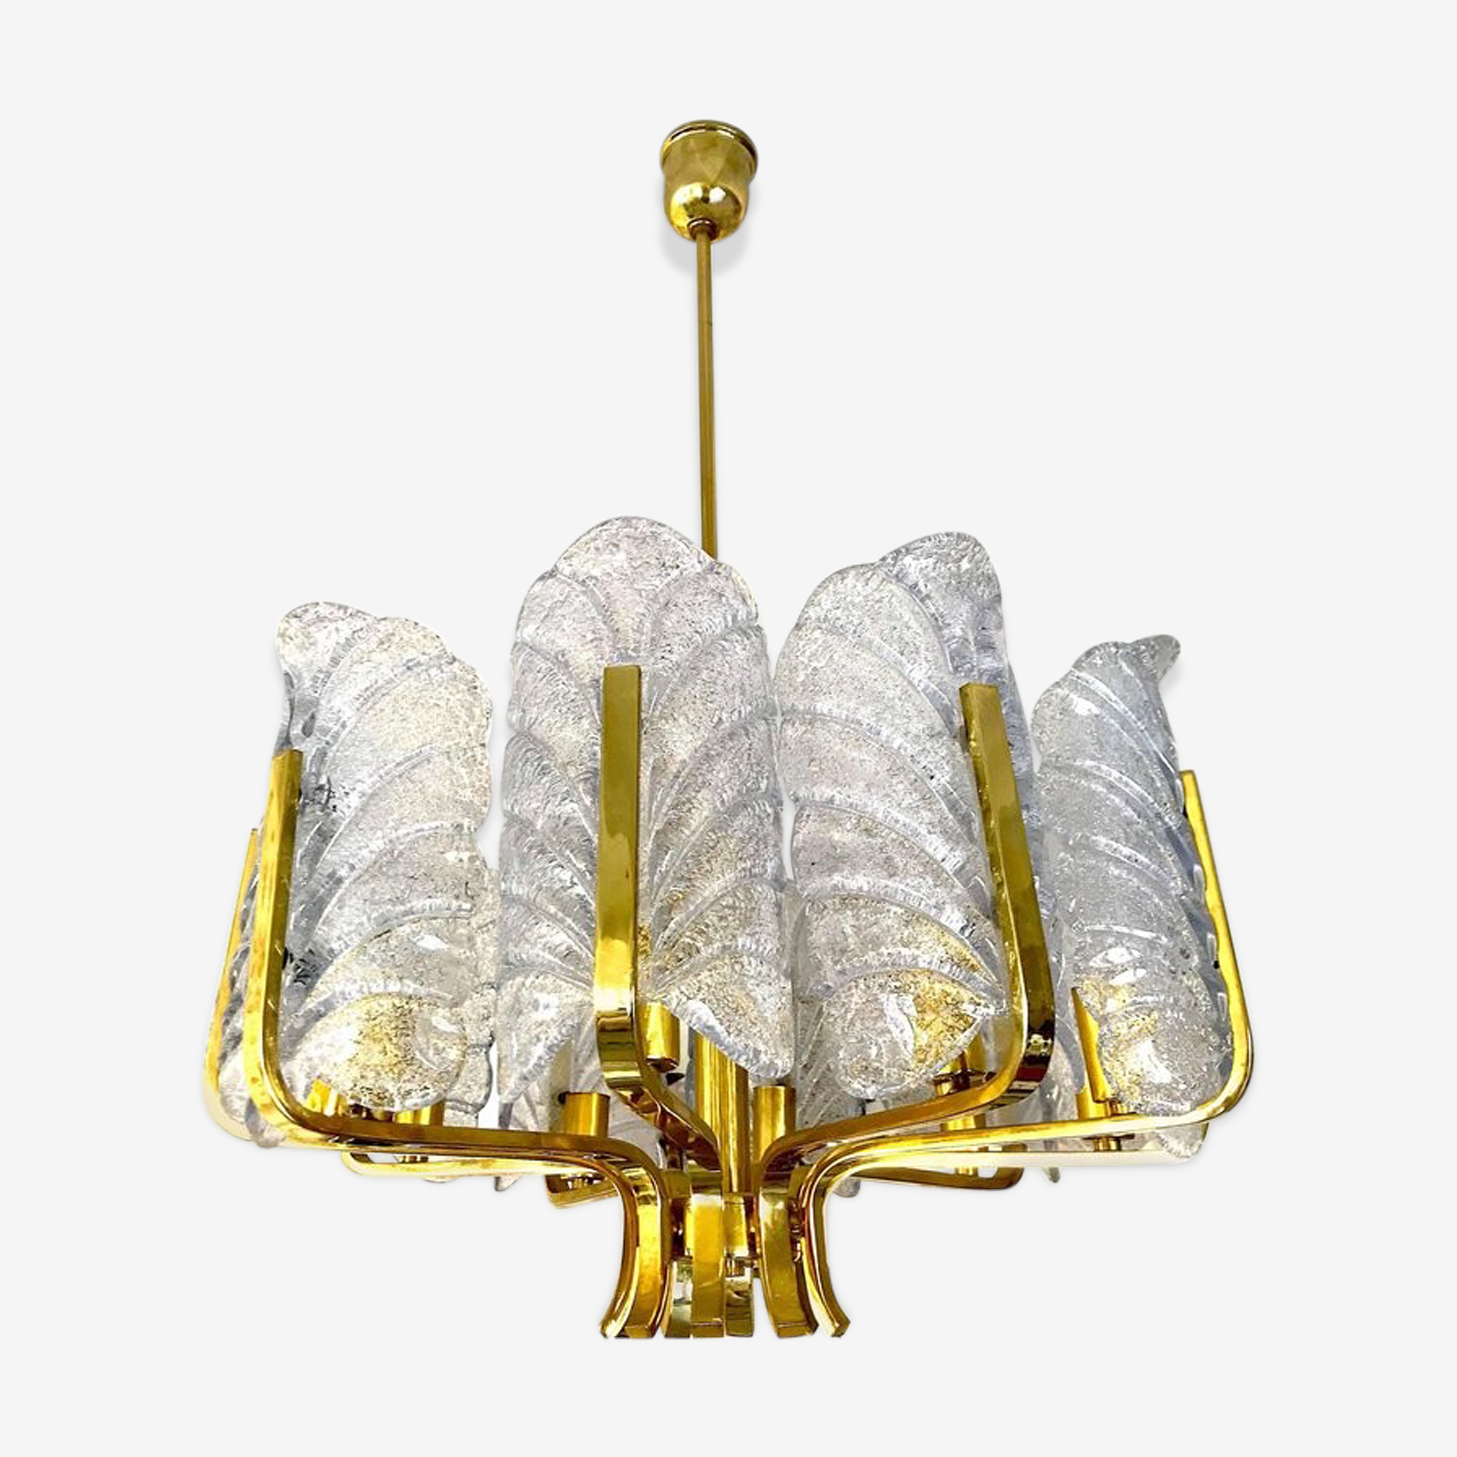 Chandelier Carl Fagerlund by Orrefors with Ten Barovier & Toso Murano 1960